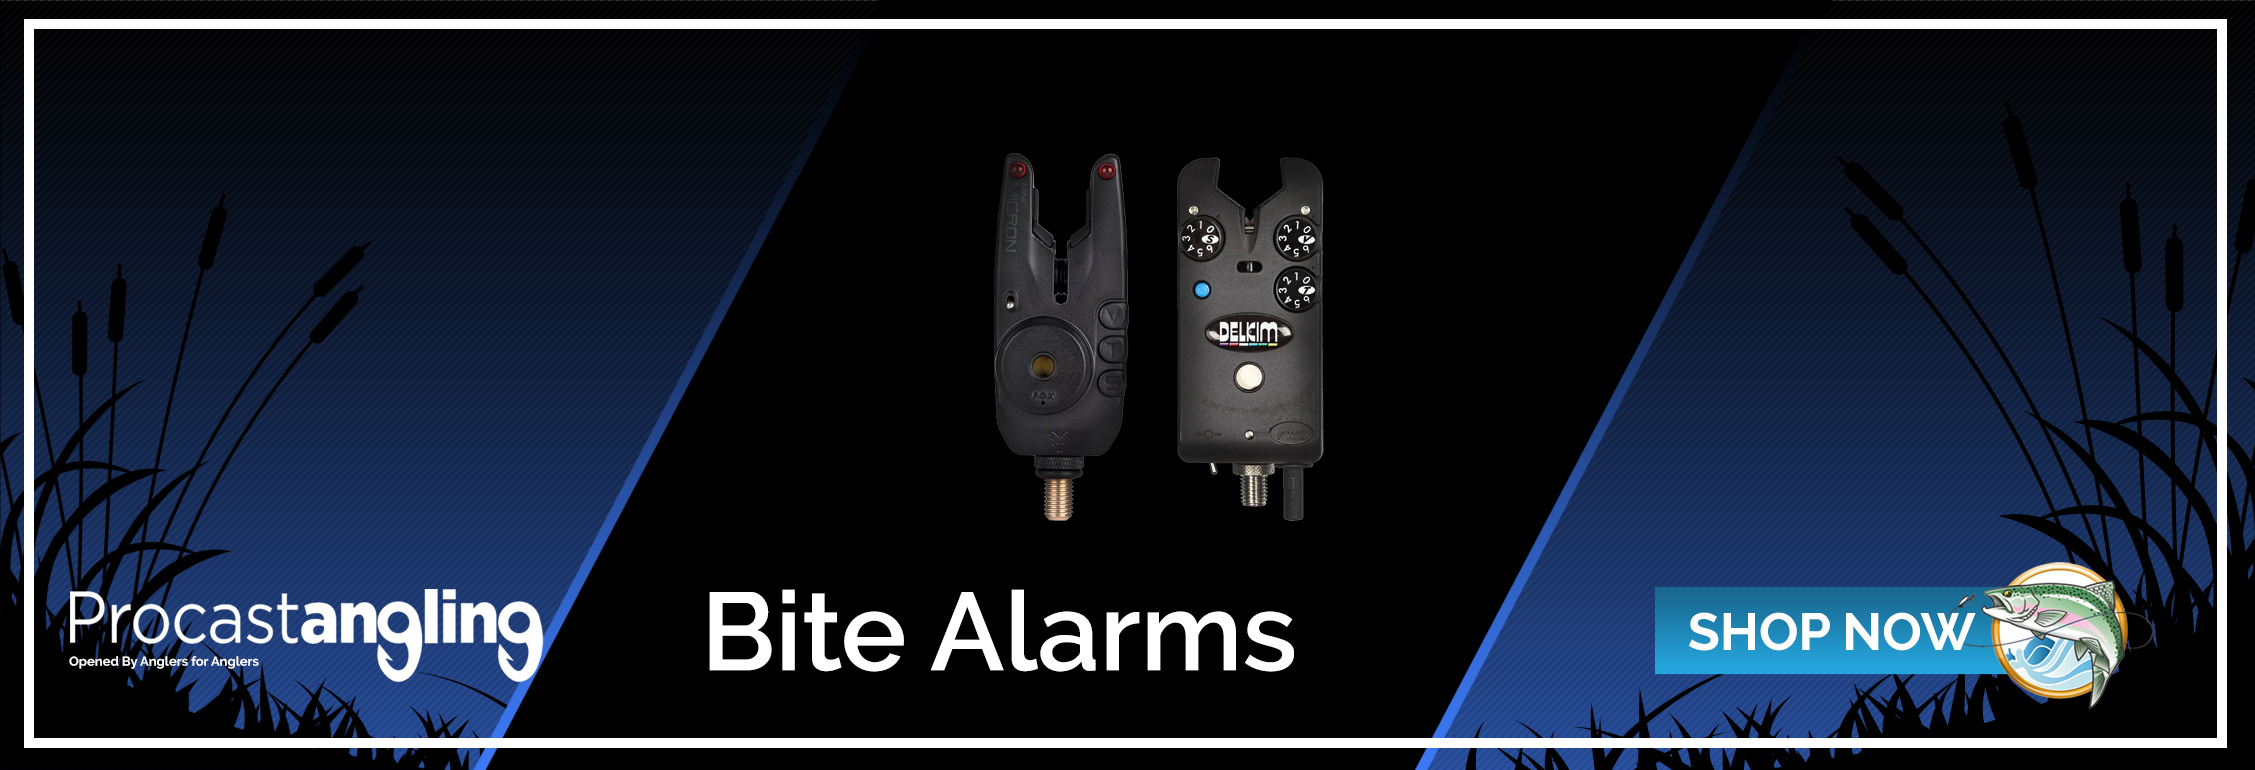 BITE ALARMS